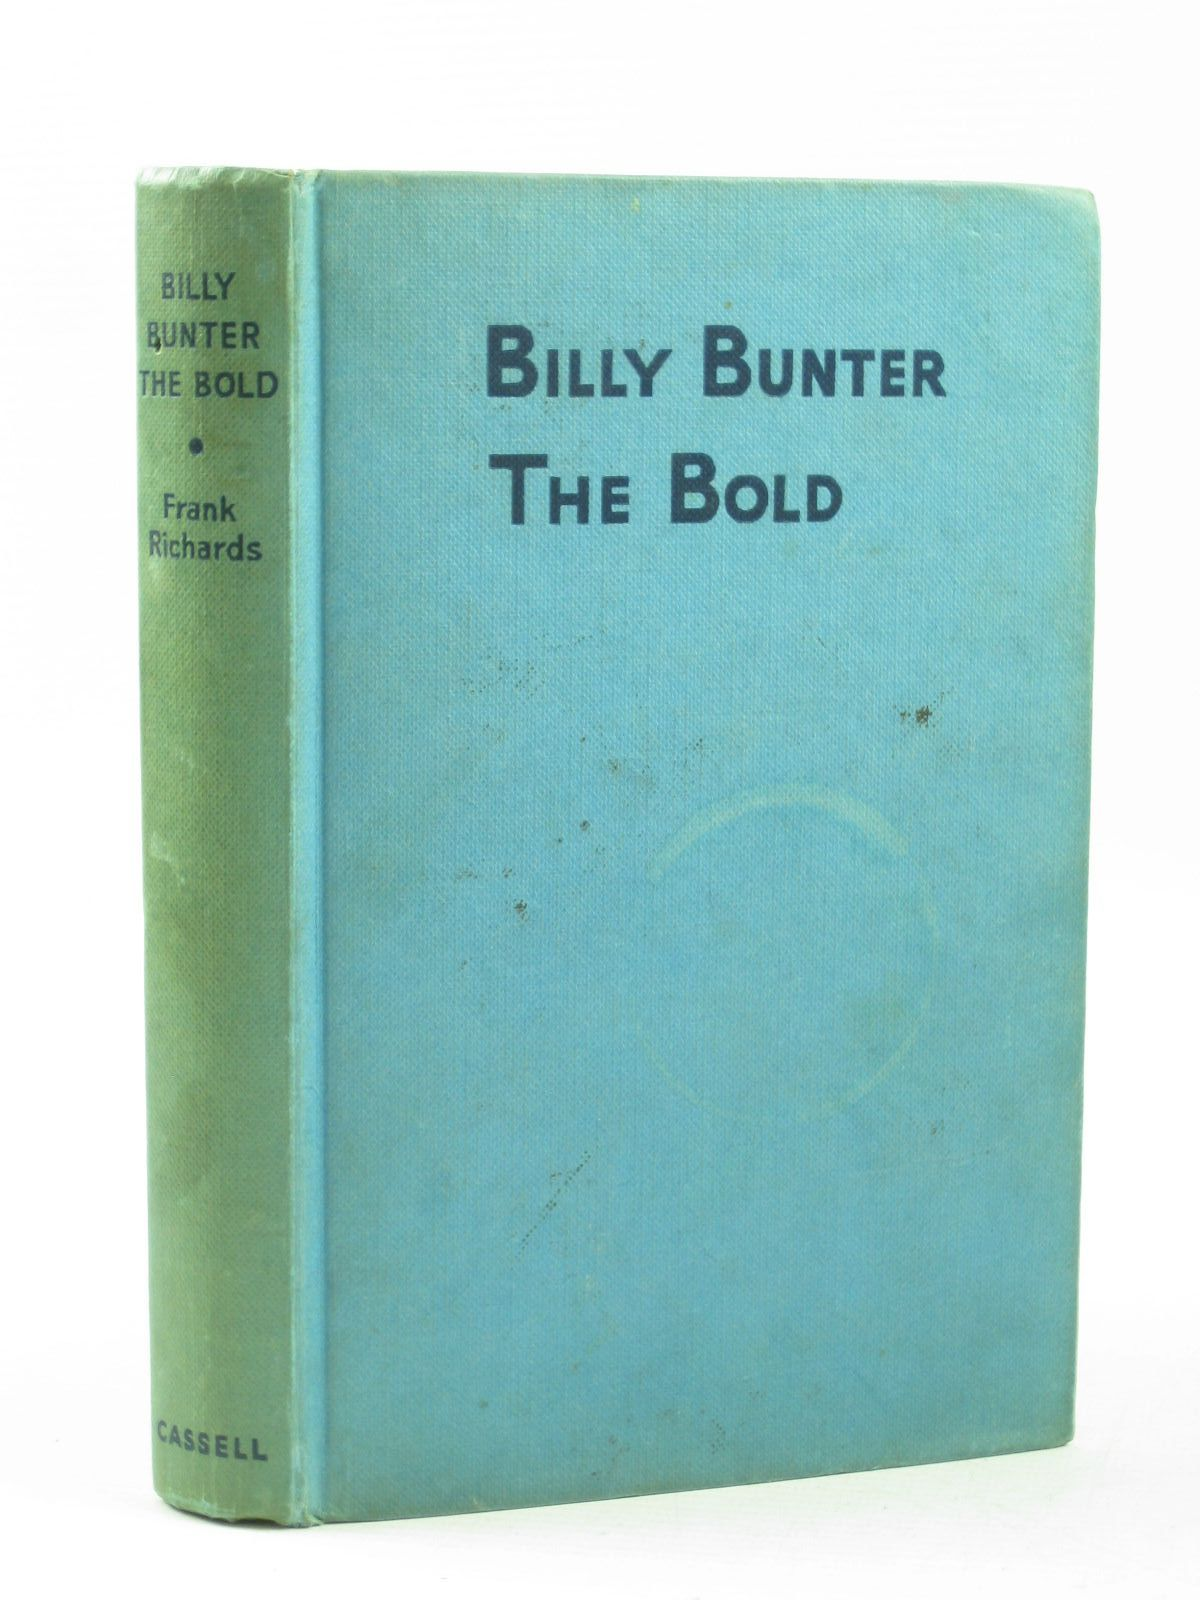 Photo of BILLY BUNTER THE BOLD